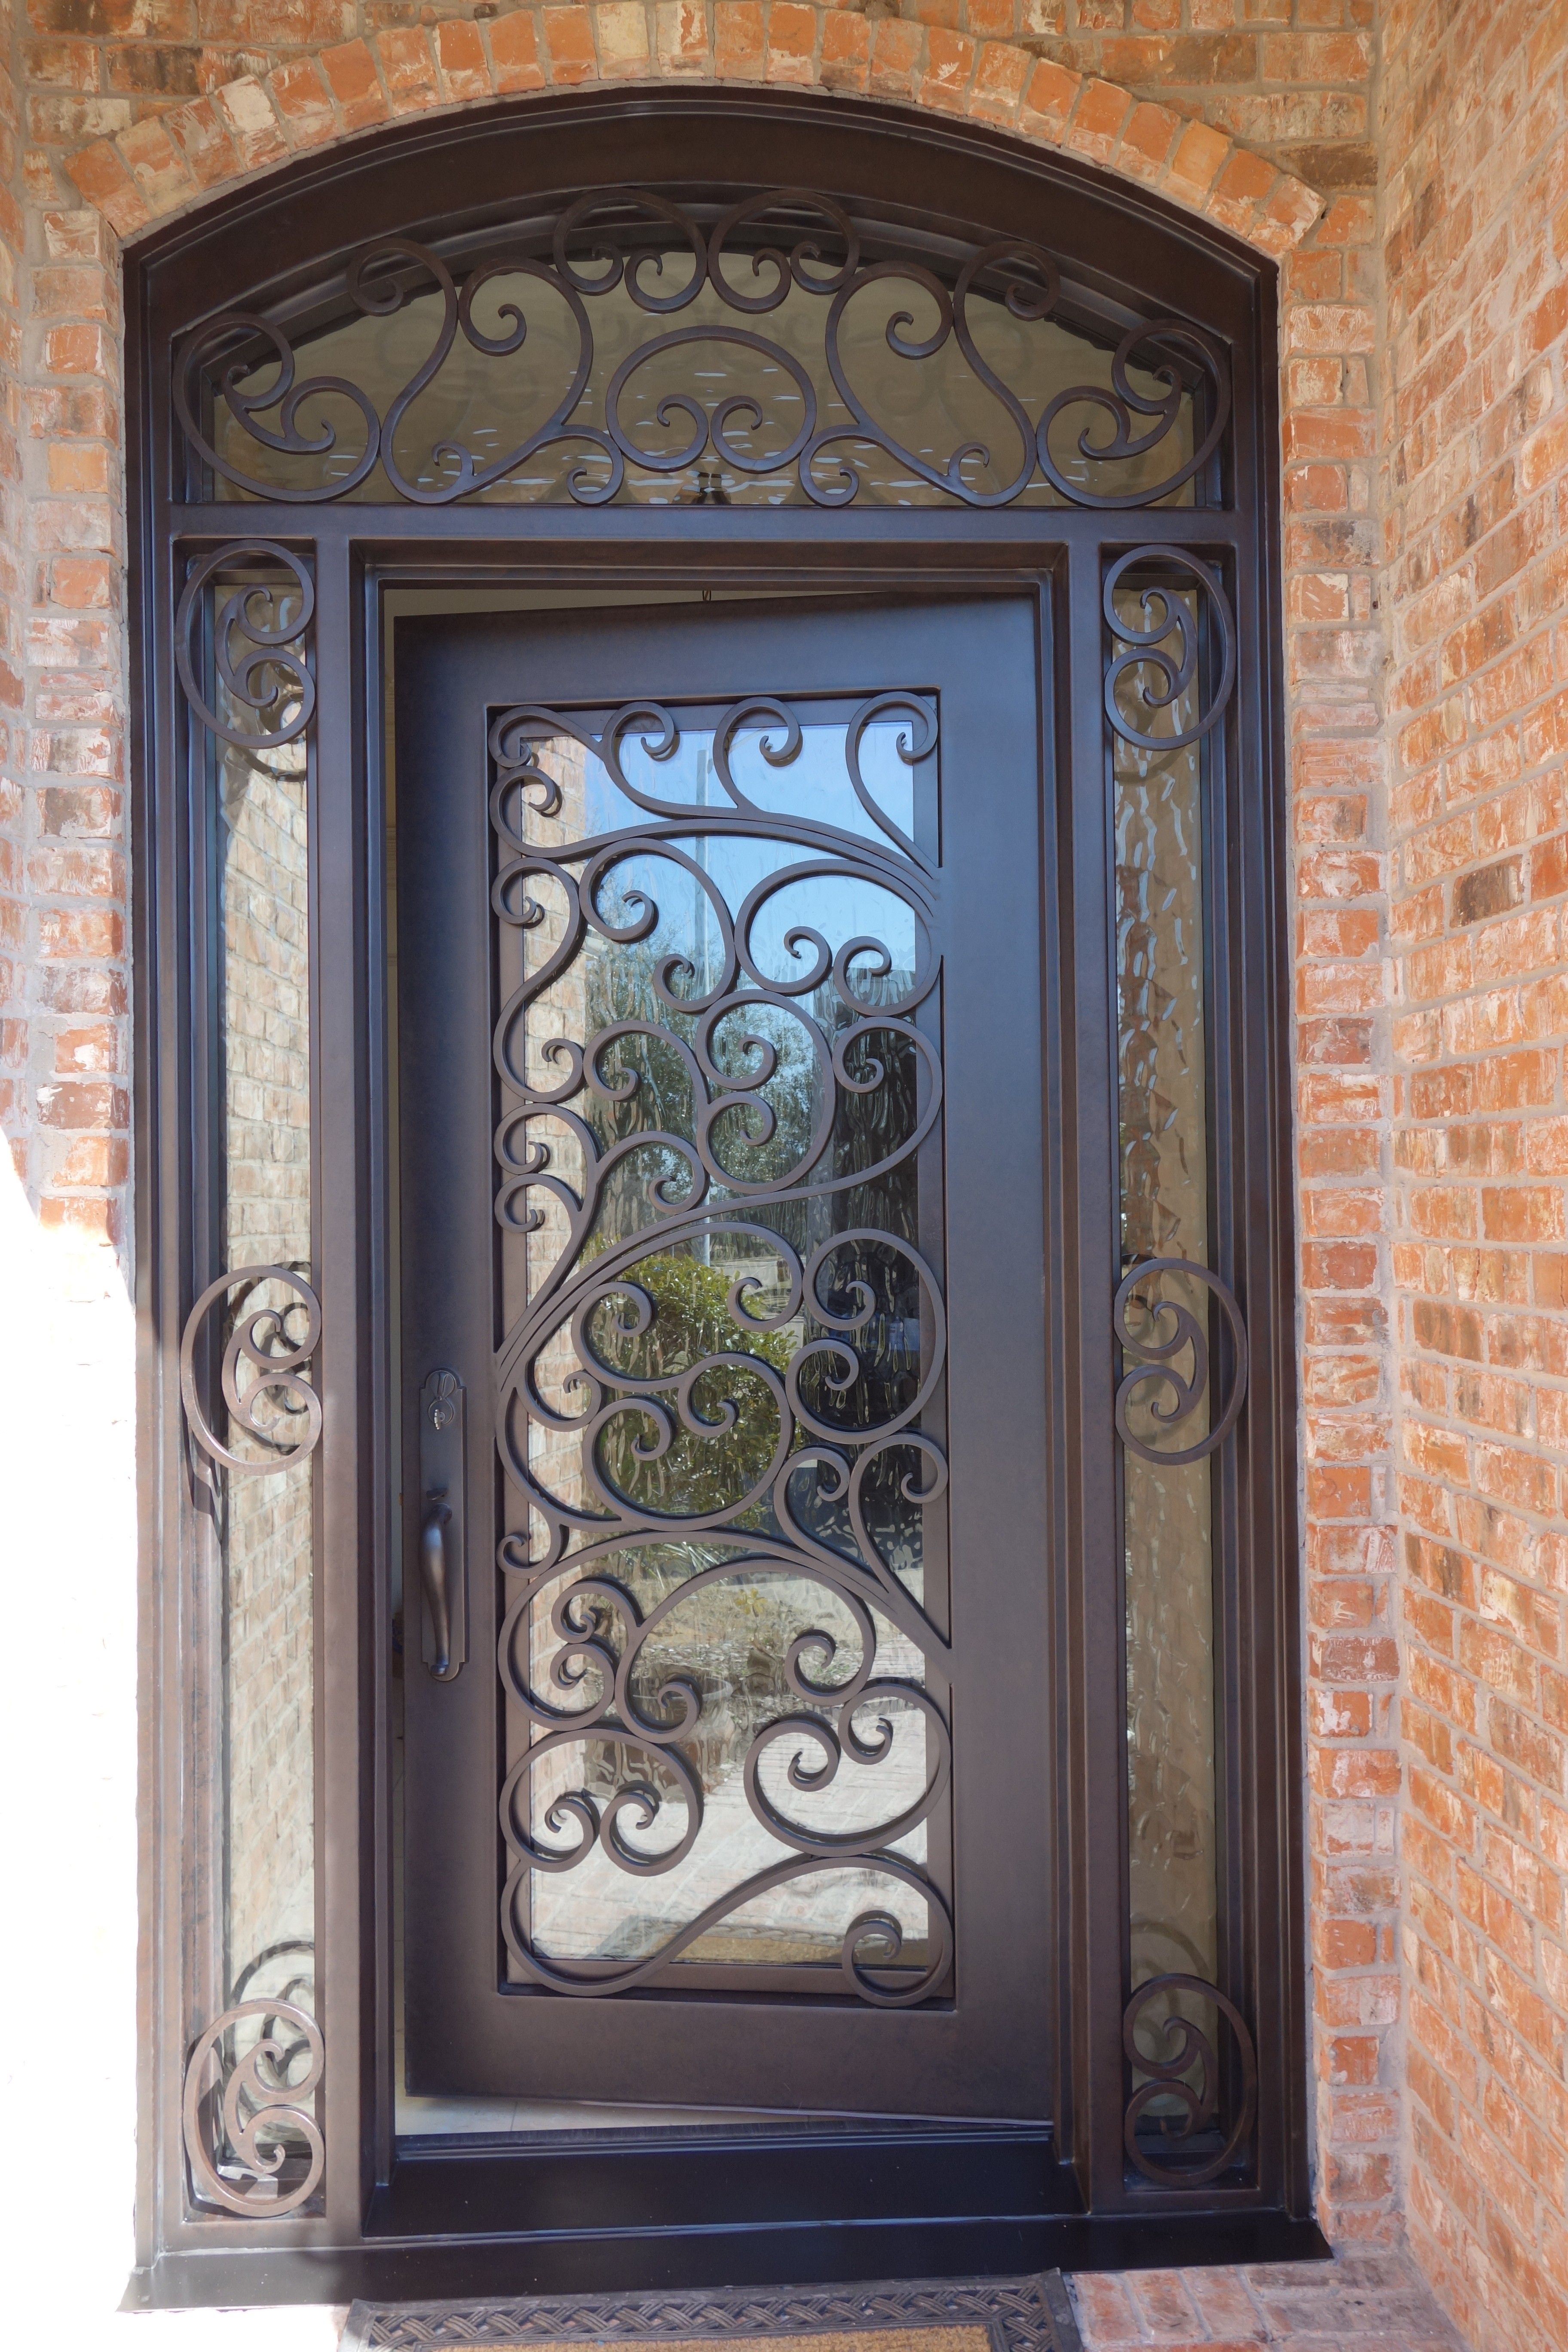 Entrance Doors Id 301 105 Single Iron Door With Side Windows And Transom Front